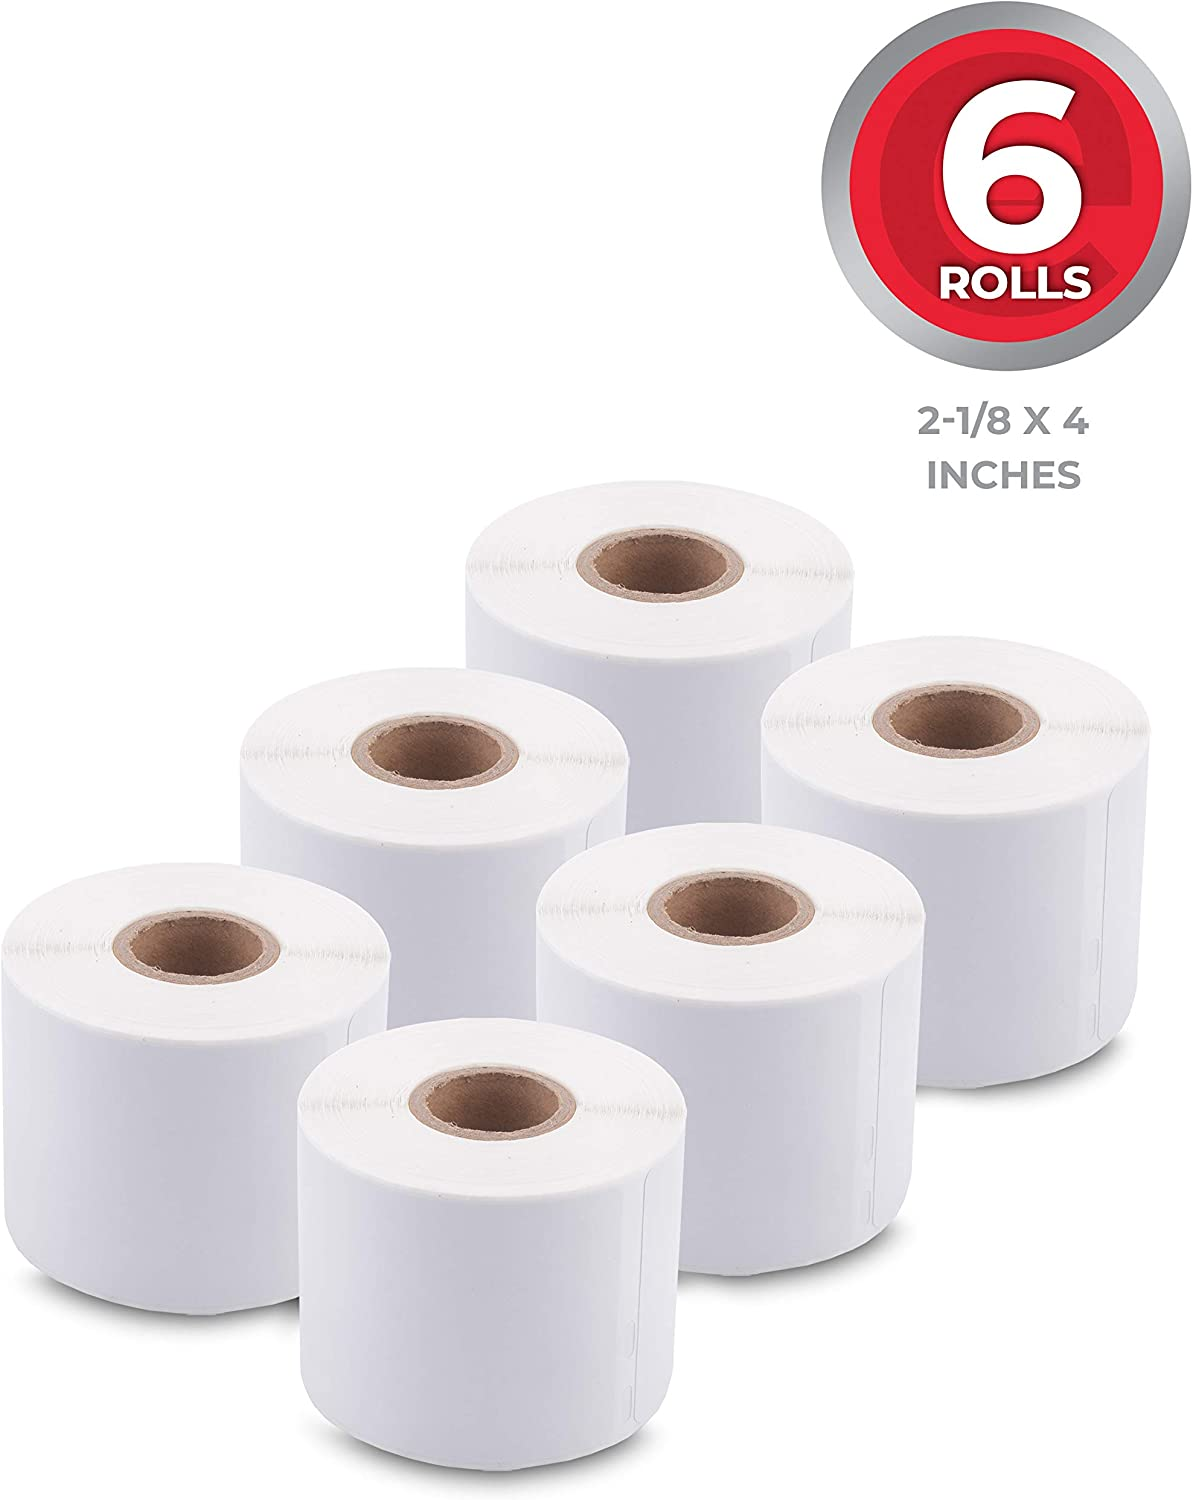 "enKo (6 Rolls, 1320 Labels) Address & Shipping Labels 30323 (2-1/8 x 4"") Compatible for Dymo LabelWriter : Office Products"